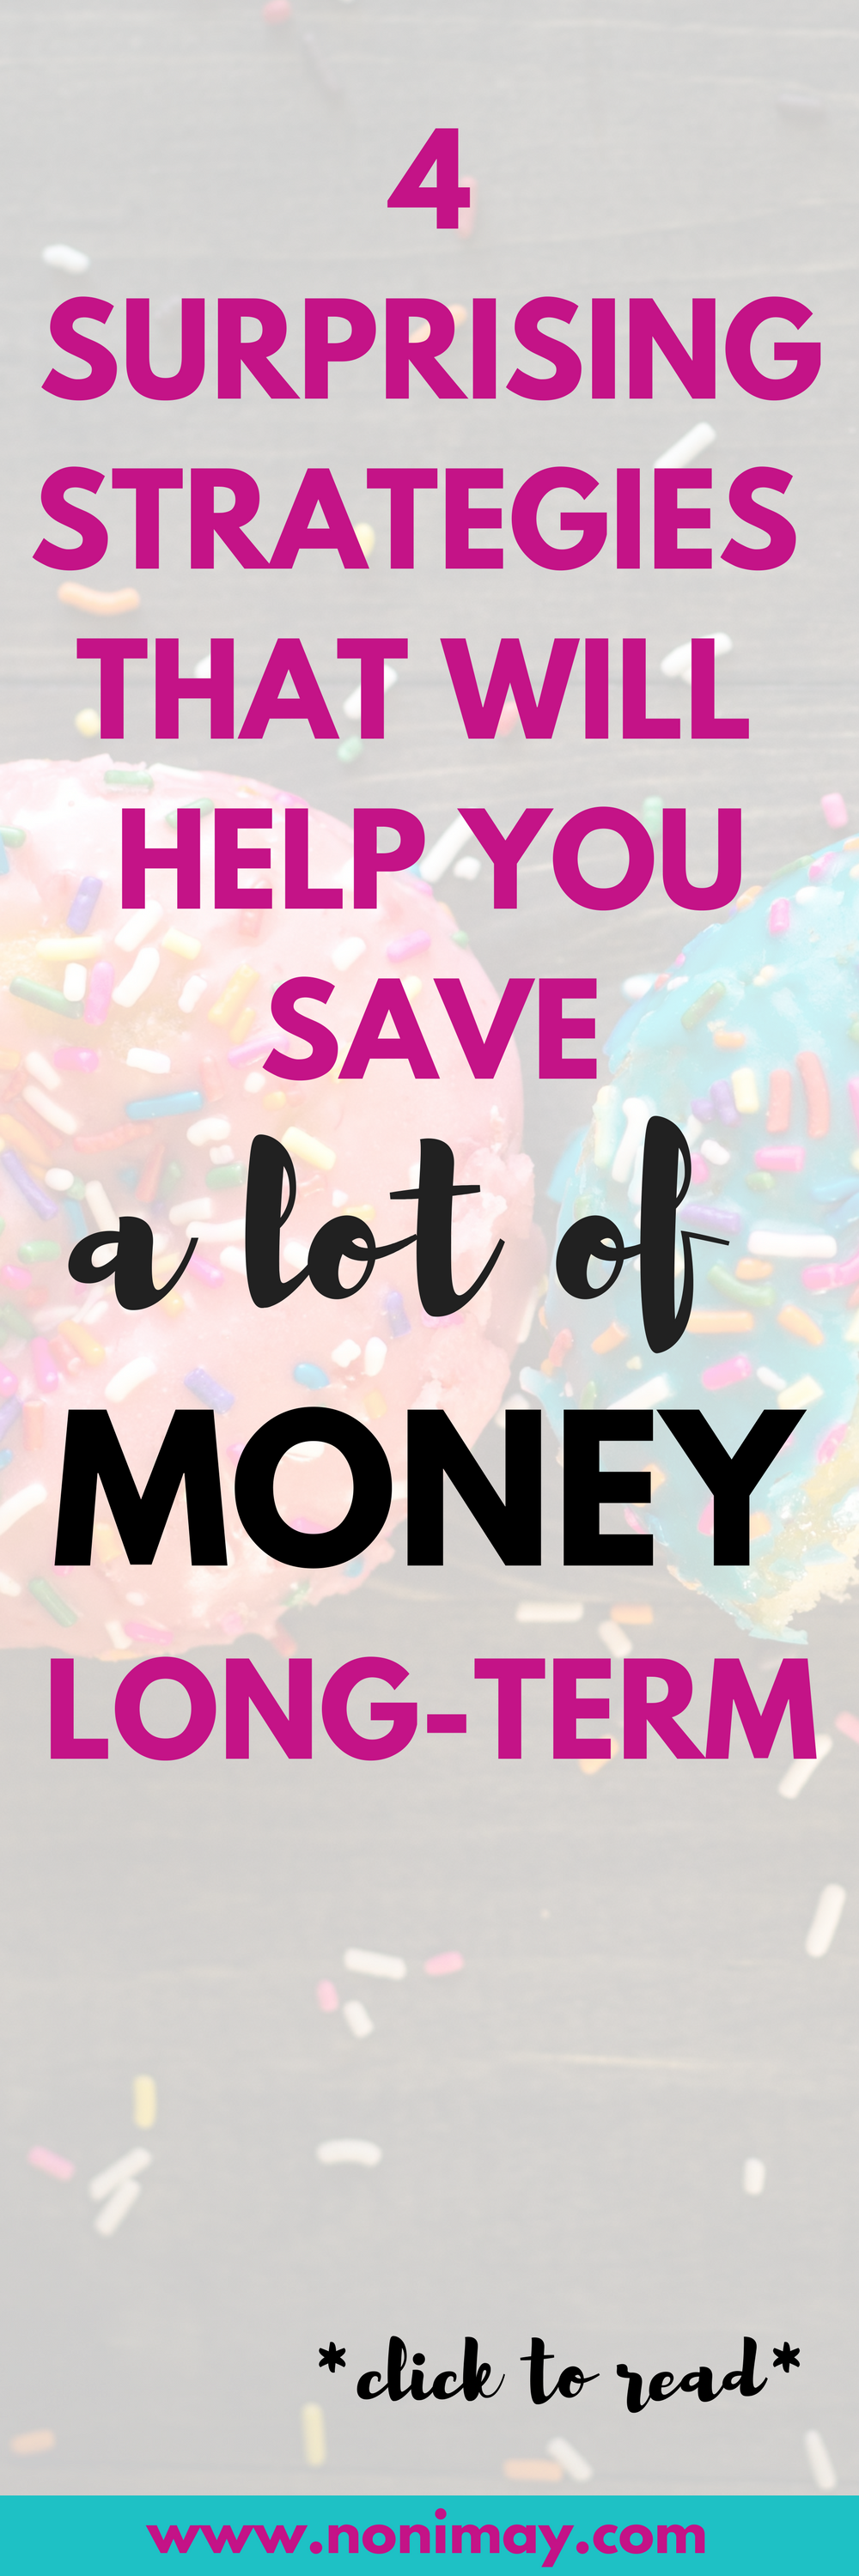 4 Quick ways to save money long-term. The following advice on safeguarding your funds should give you some idea as to what you could be doing to secure your money in the long-term.